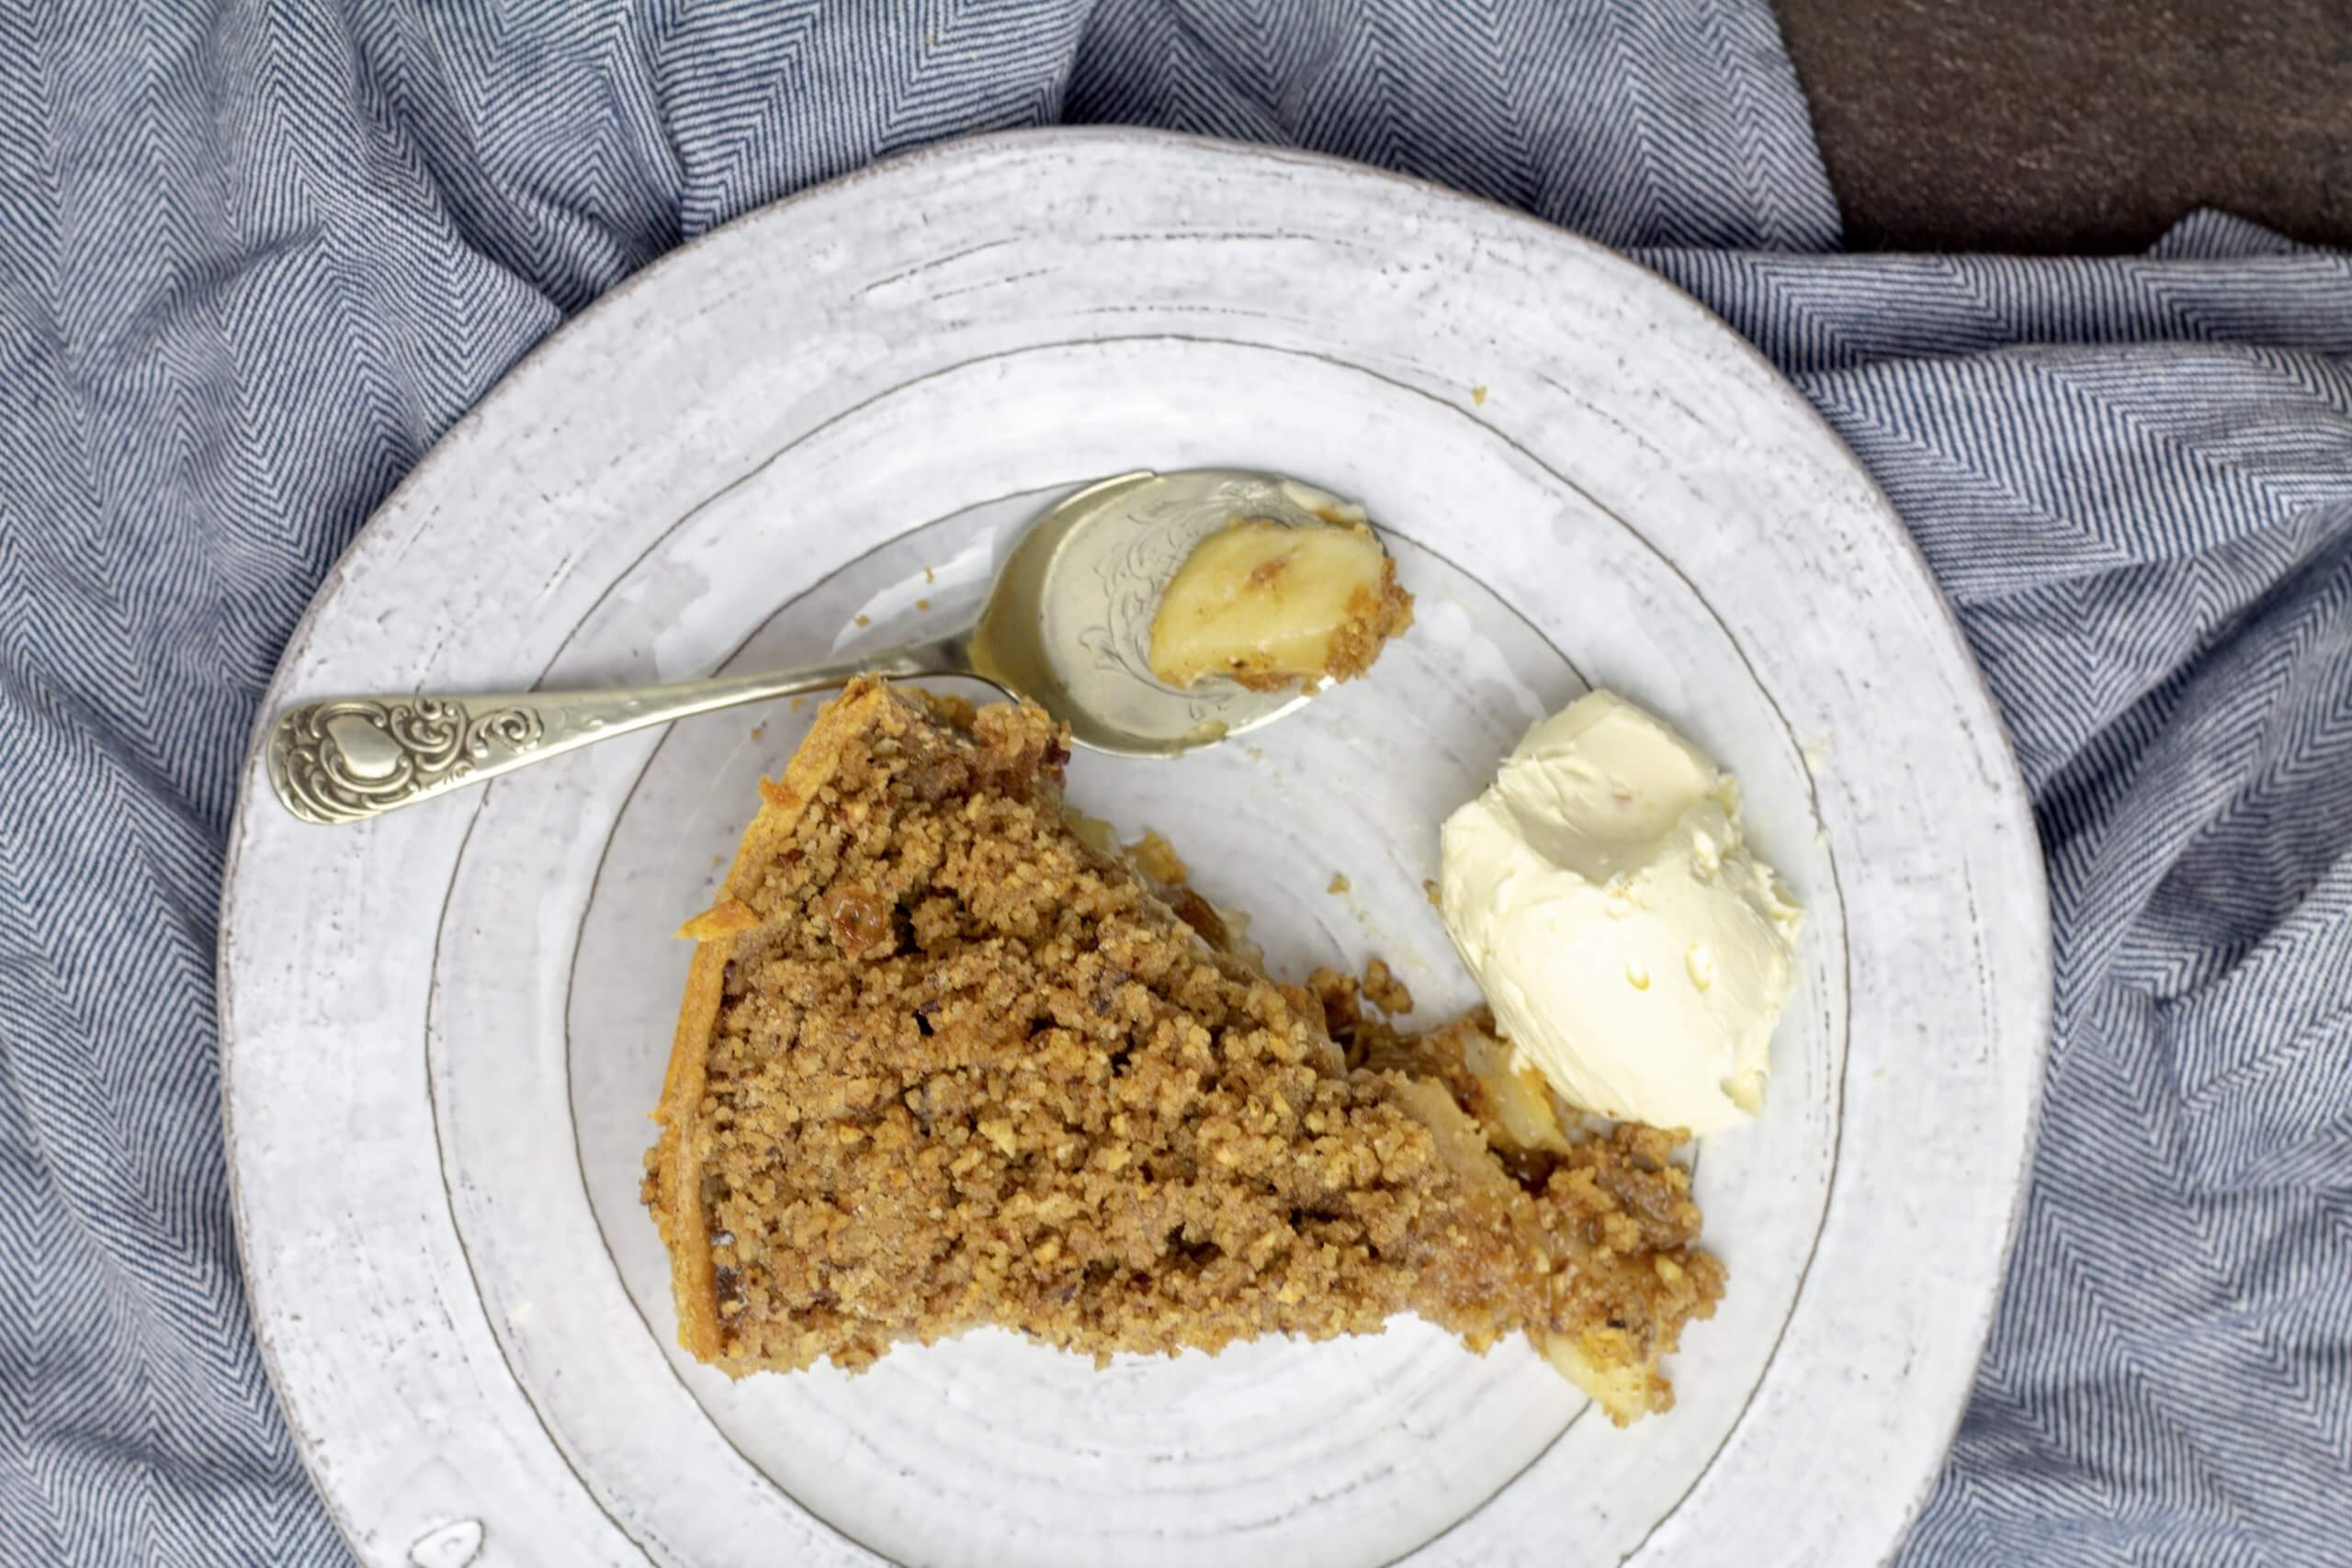 Apple and Pear Crumble Pie